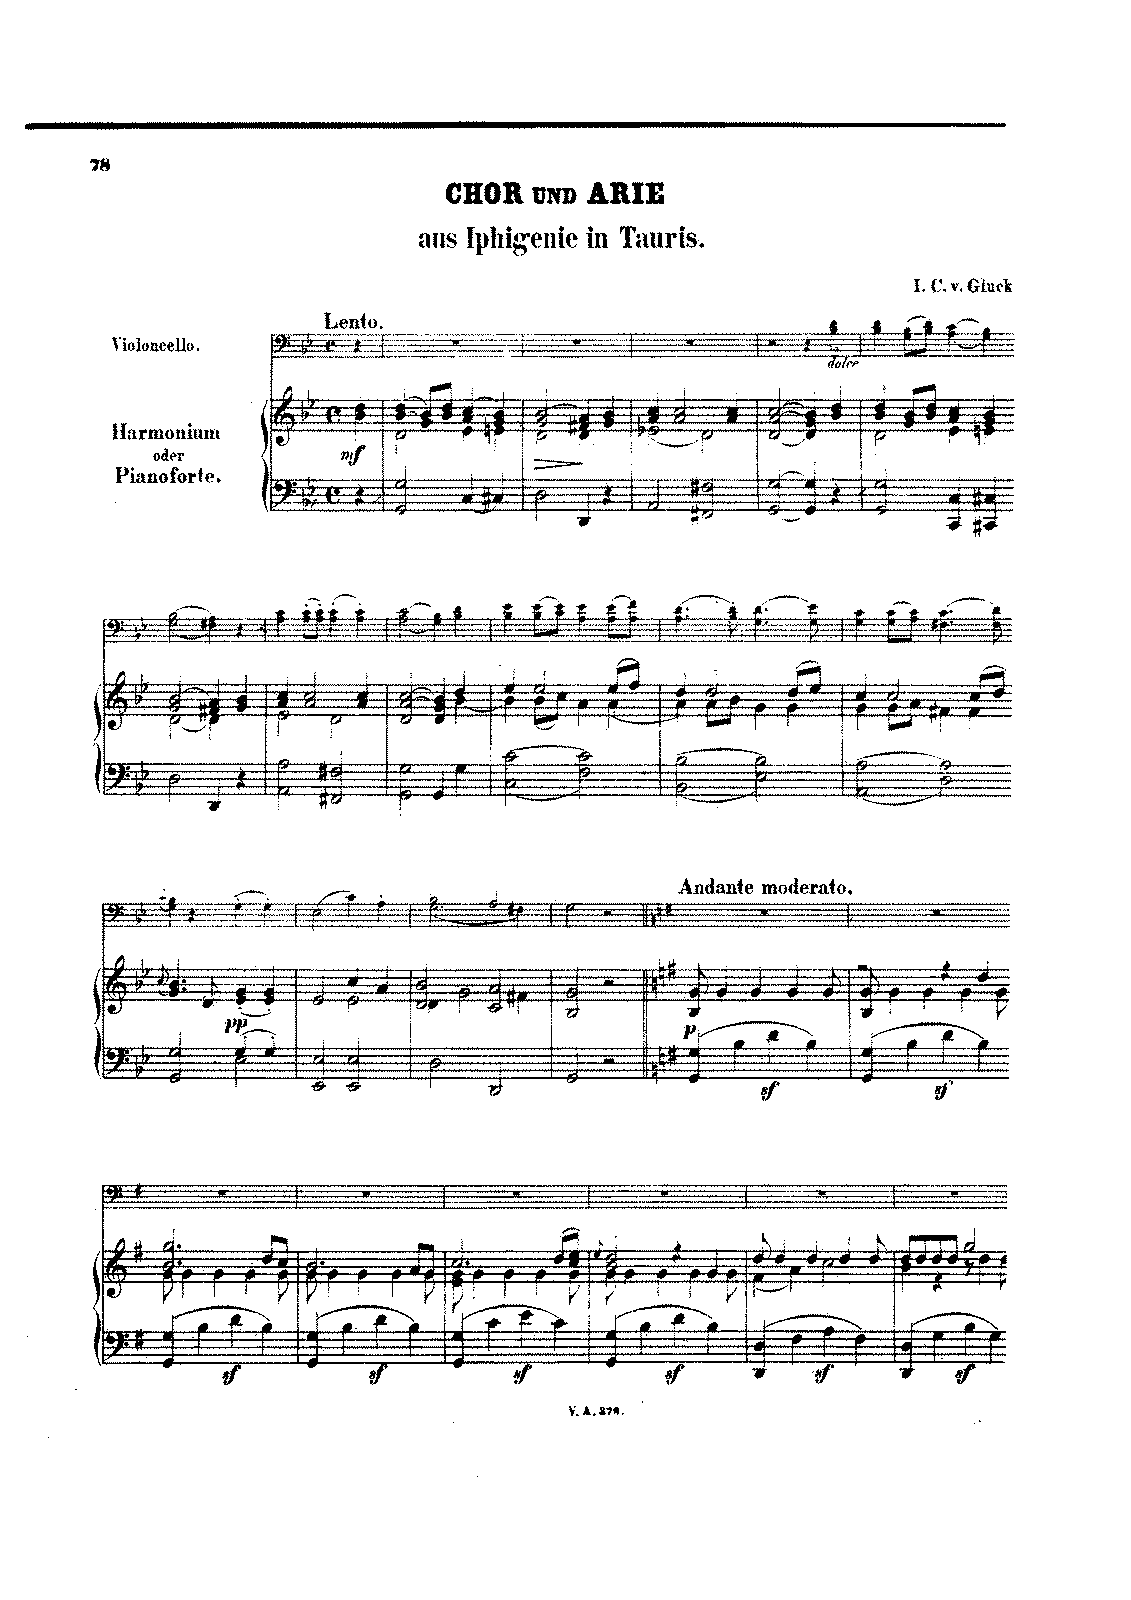 PMLP56935-Gluck - Chor and Arie from Iphigenie in Tauris for Cello and Piano score.pdf